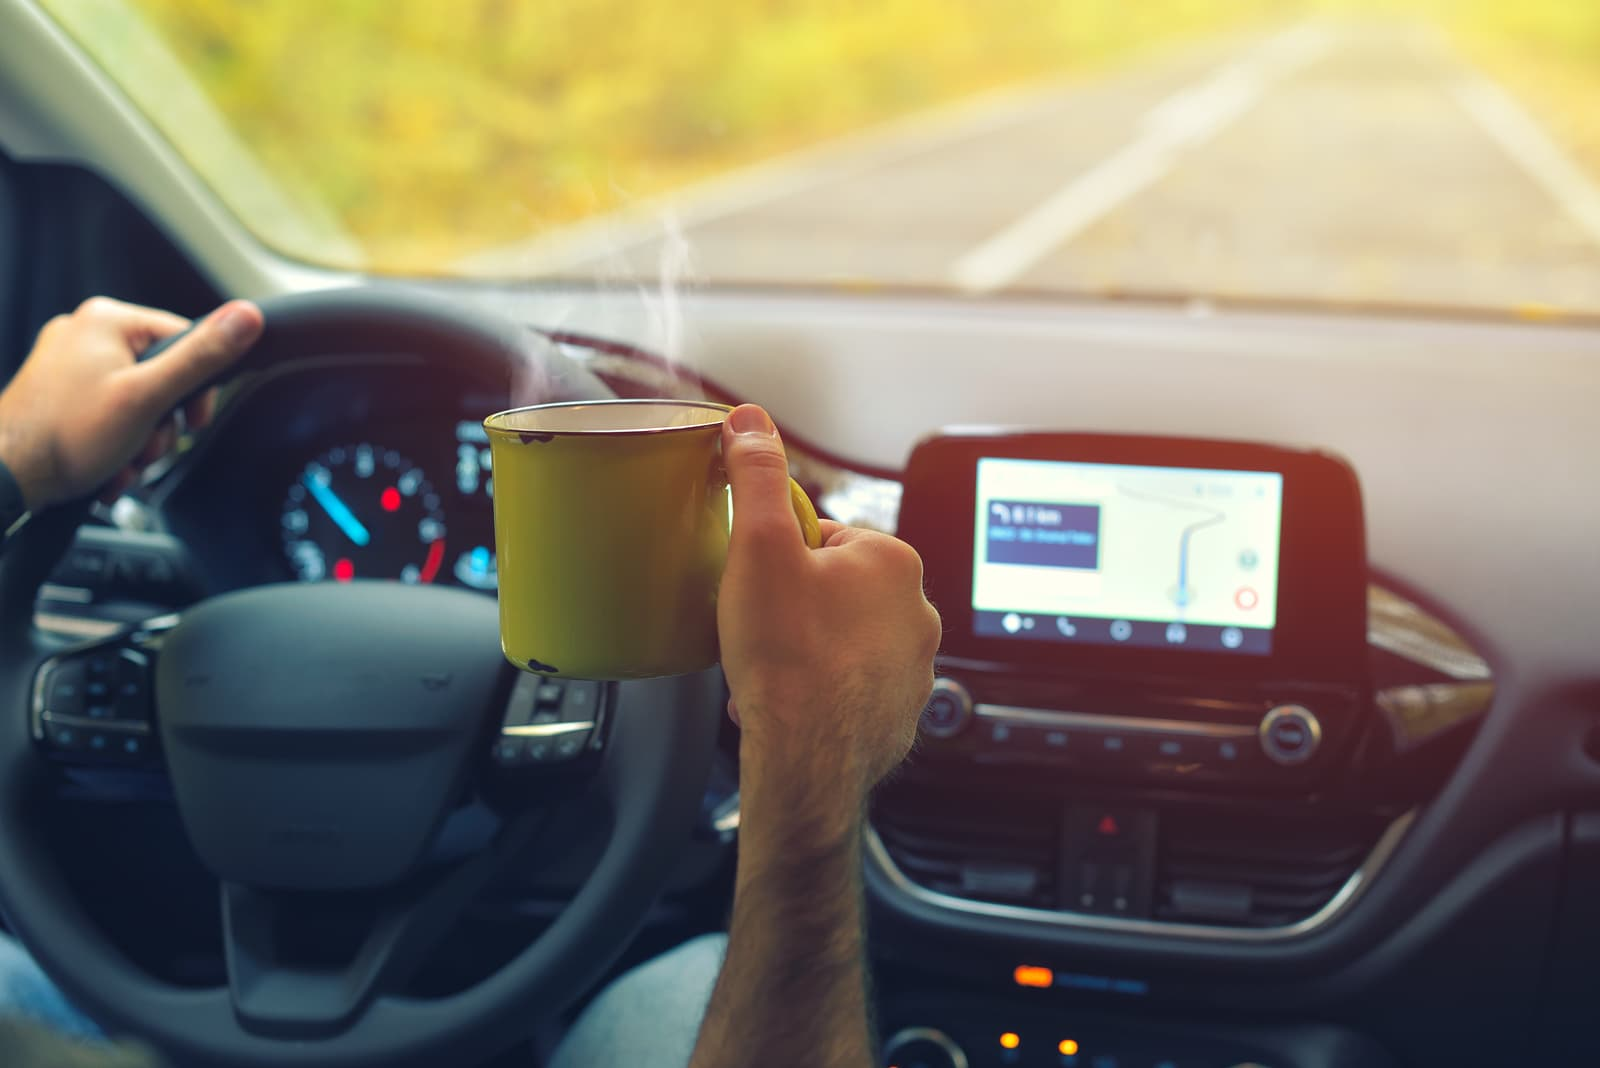 Driving Safety - 4 Things You Should Never Do While Driving